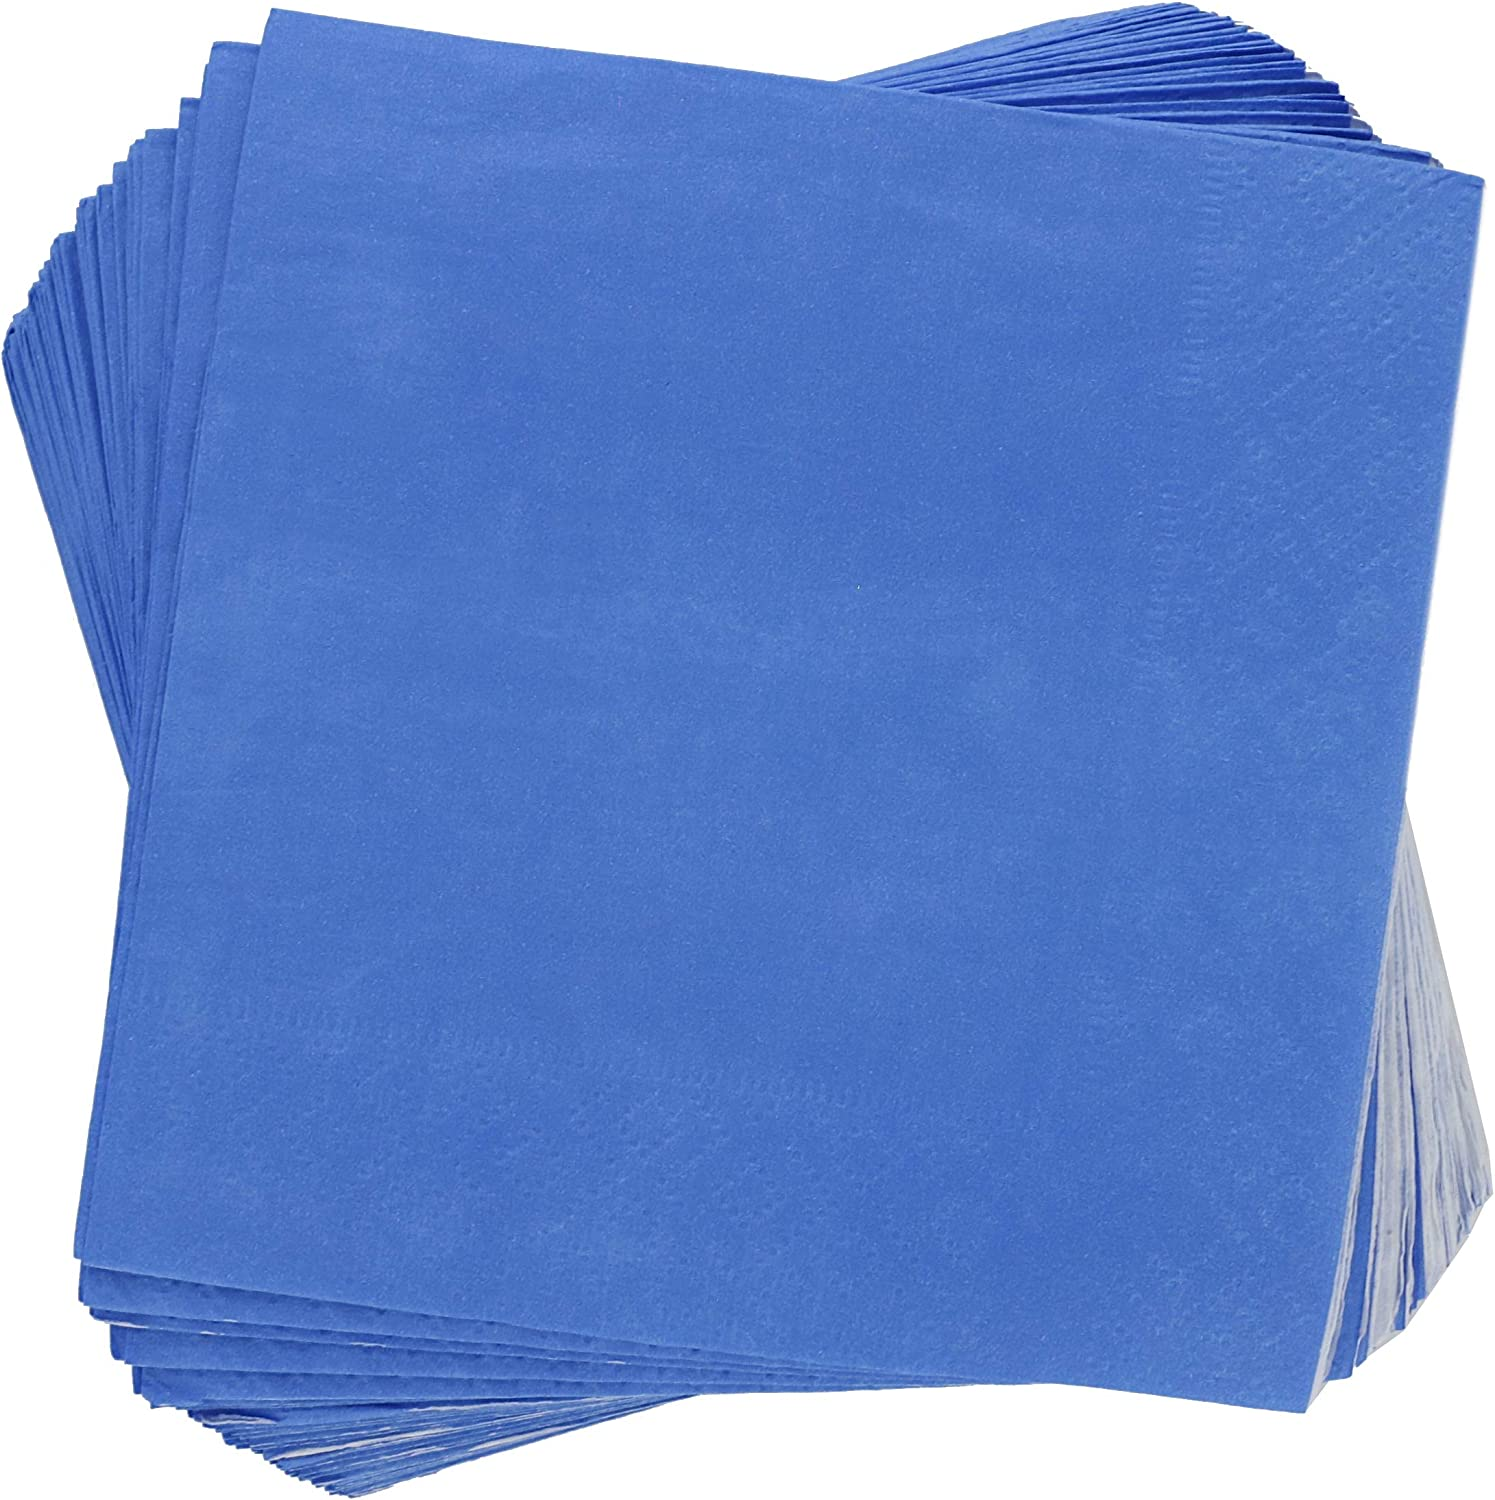 Blue Panda 200-Pack Disposable Paper Cocktail Napkins, 2-Ply, Royal Blue, 5 x 5 Inches Folded